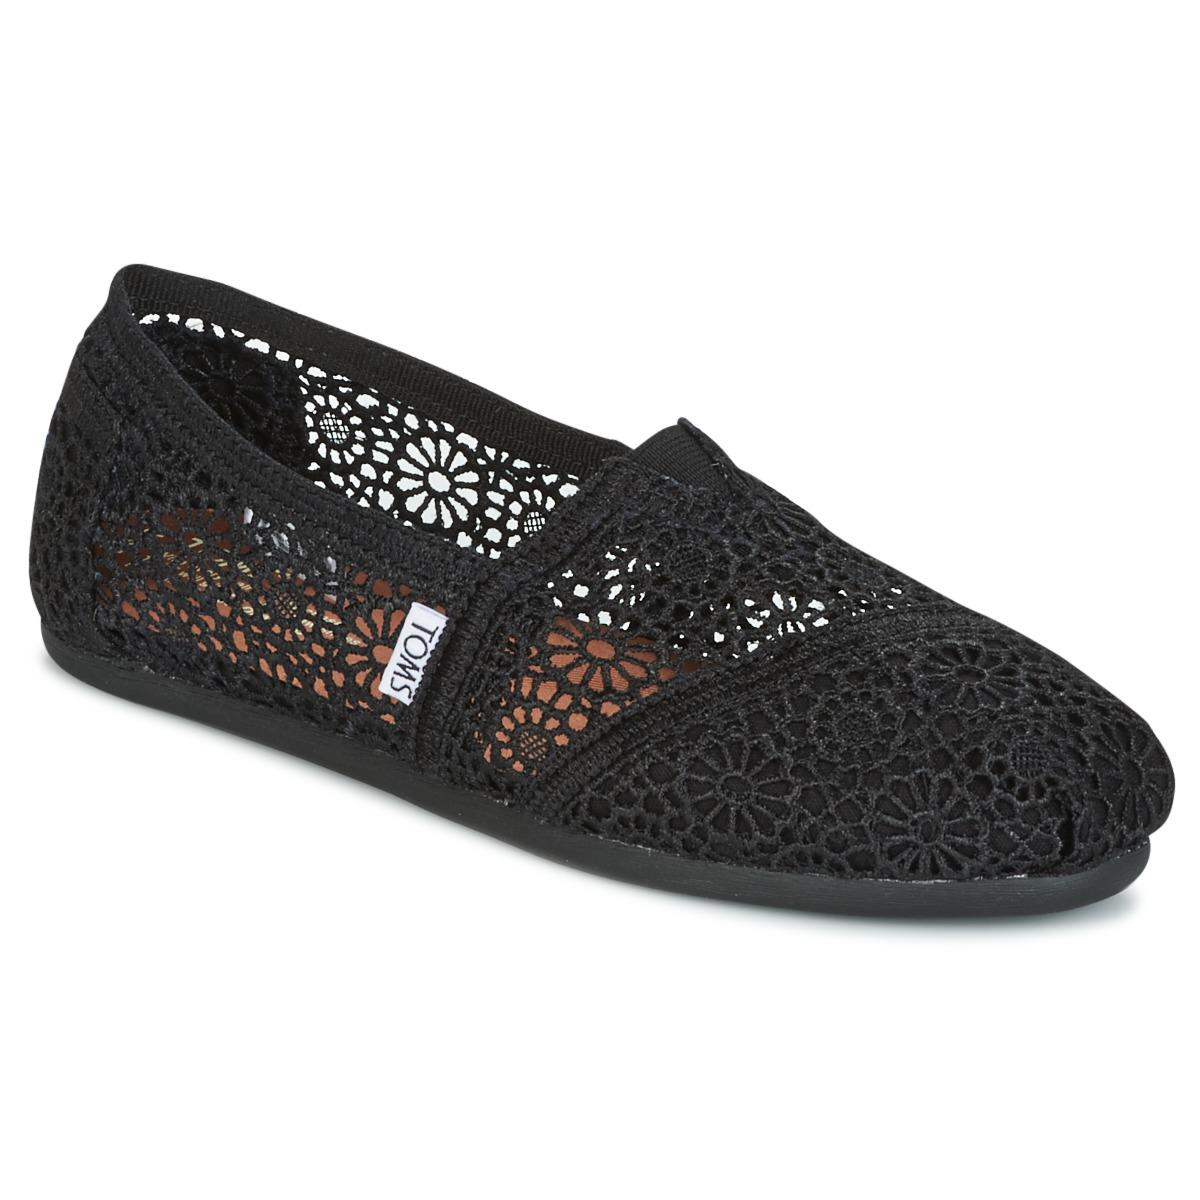 bfe34ae93a9bf TOMS 'classic' Crochet Slip-on (women) in Natural - Save 15% - Lyst